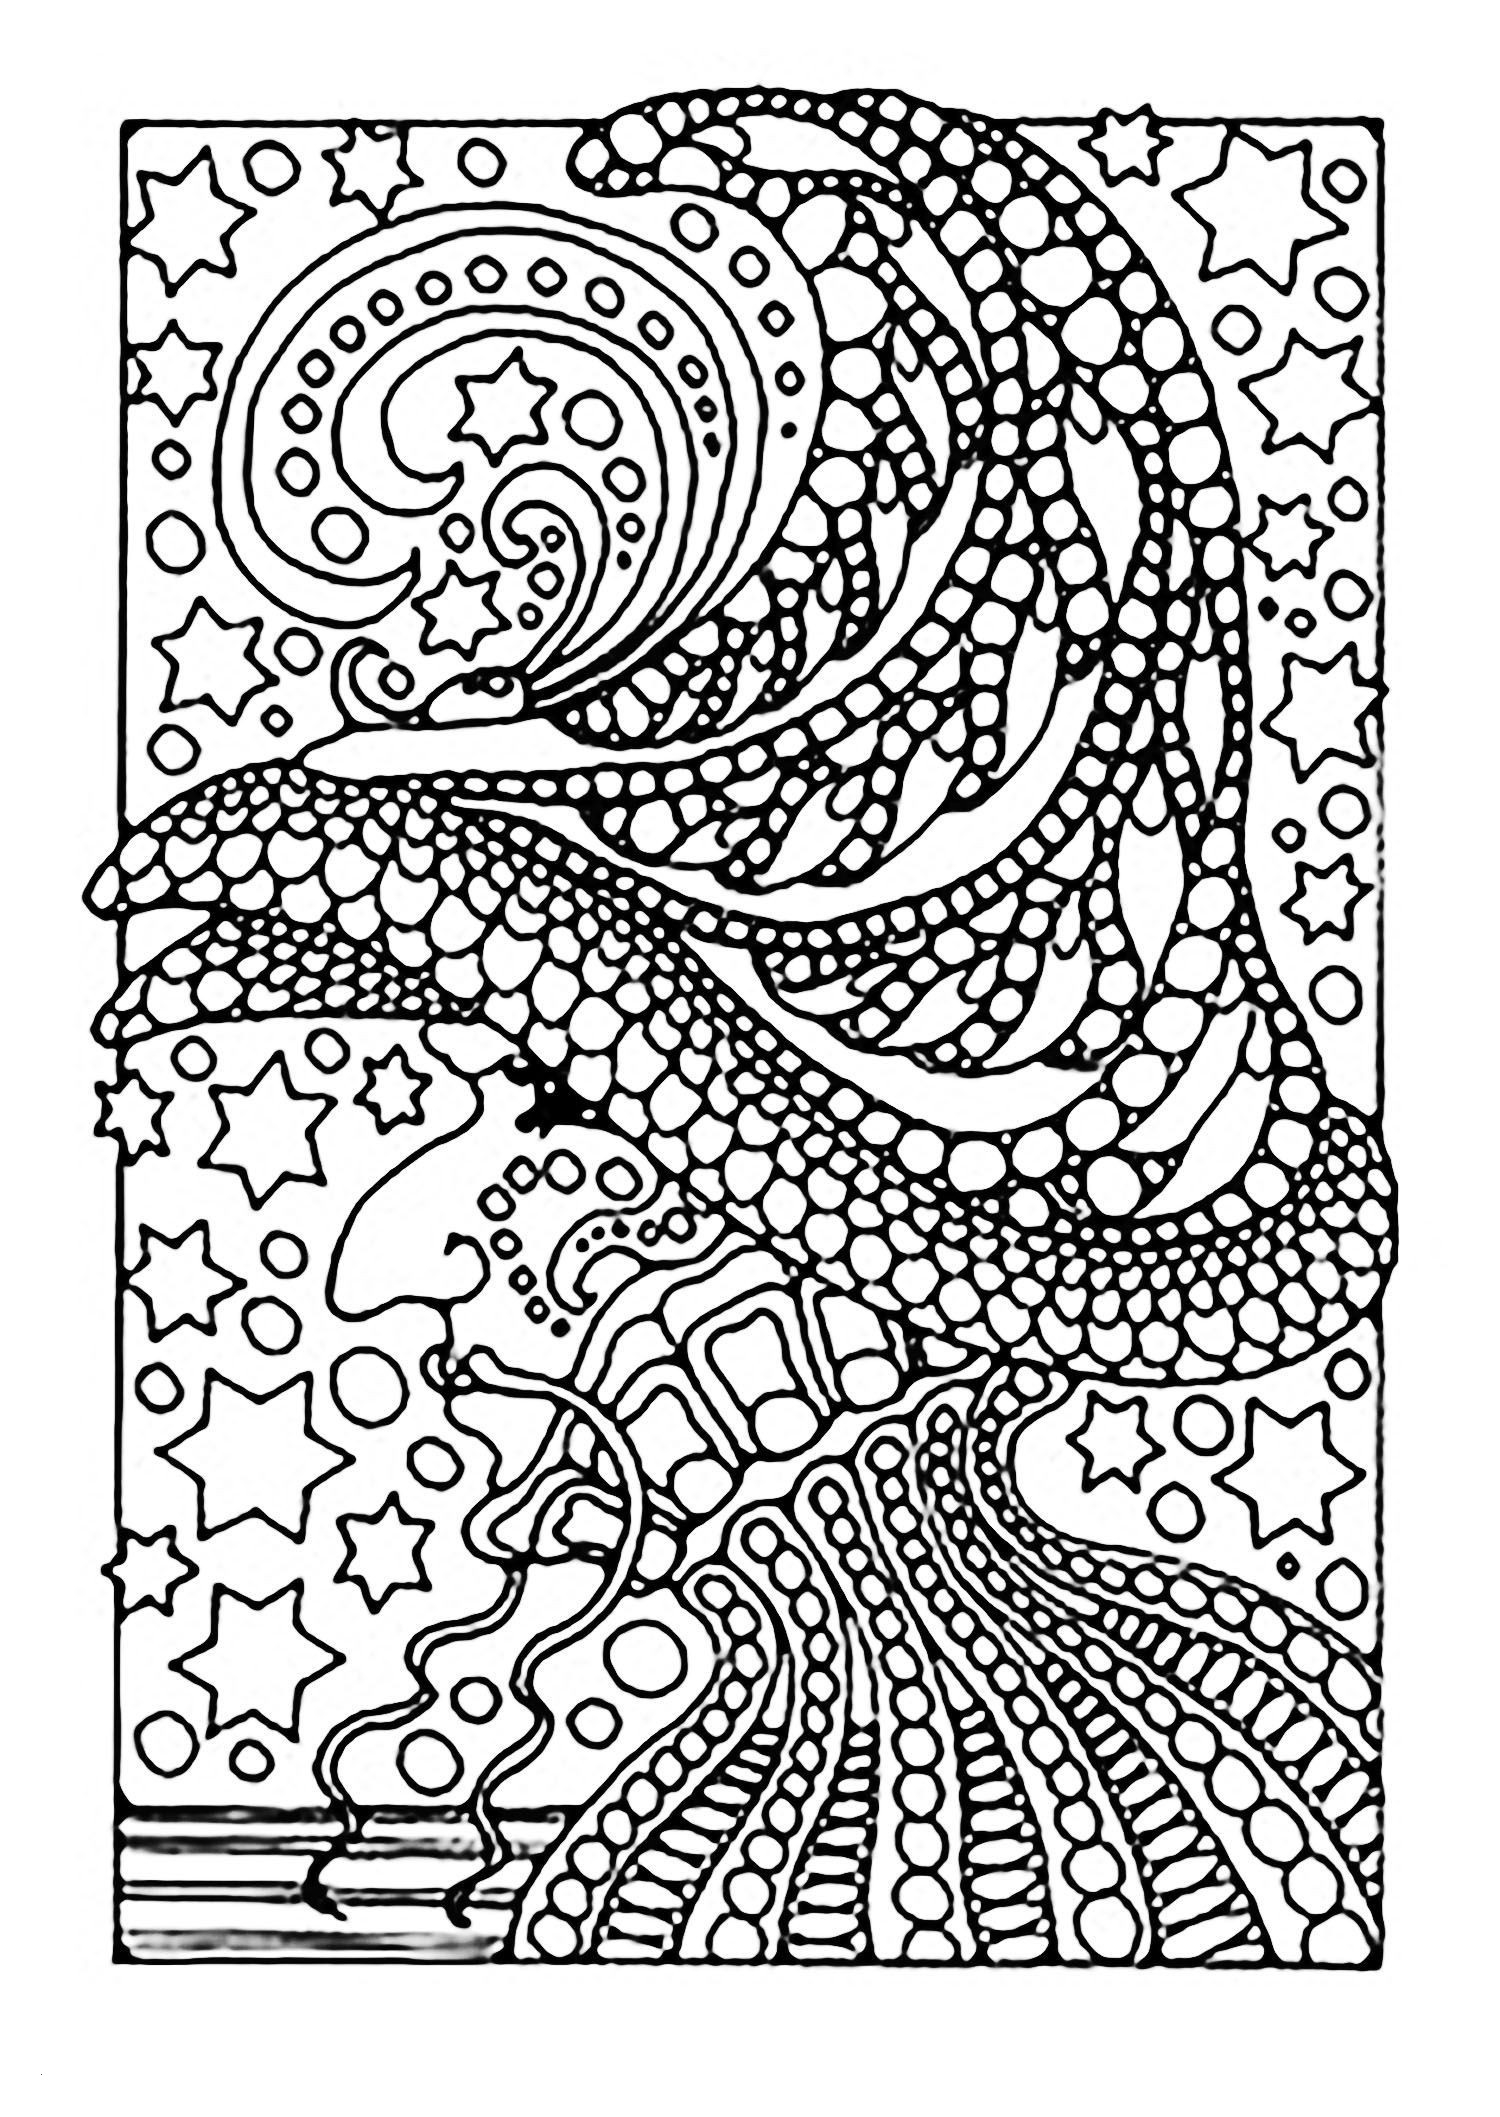 nightmare before christmas coloring pages nightmare before christmas adult coloring pages coloring pages